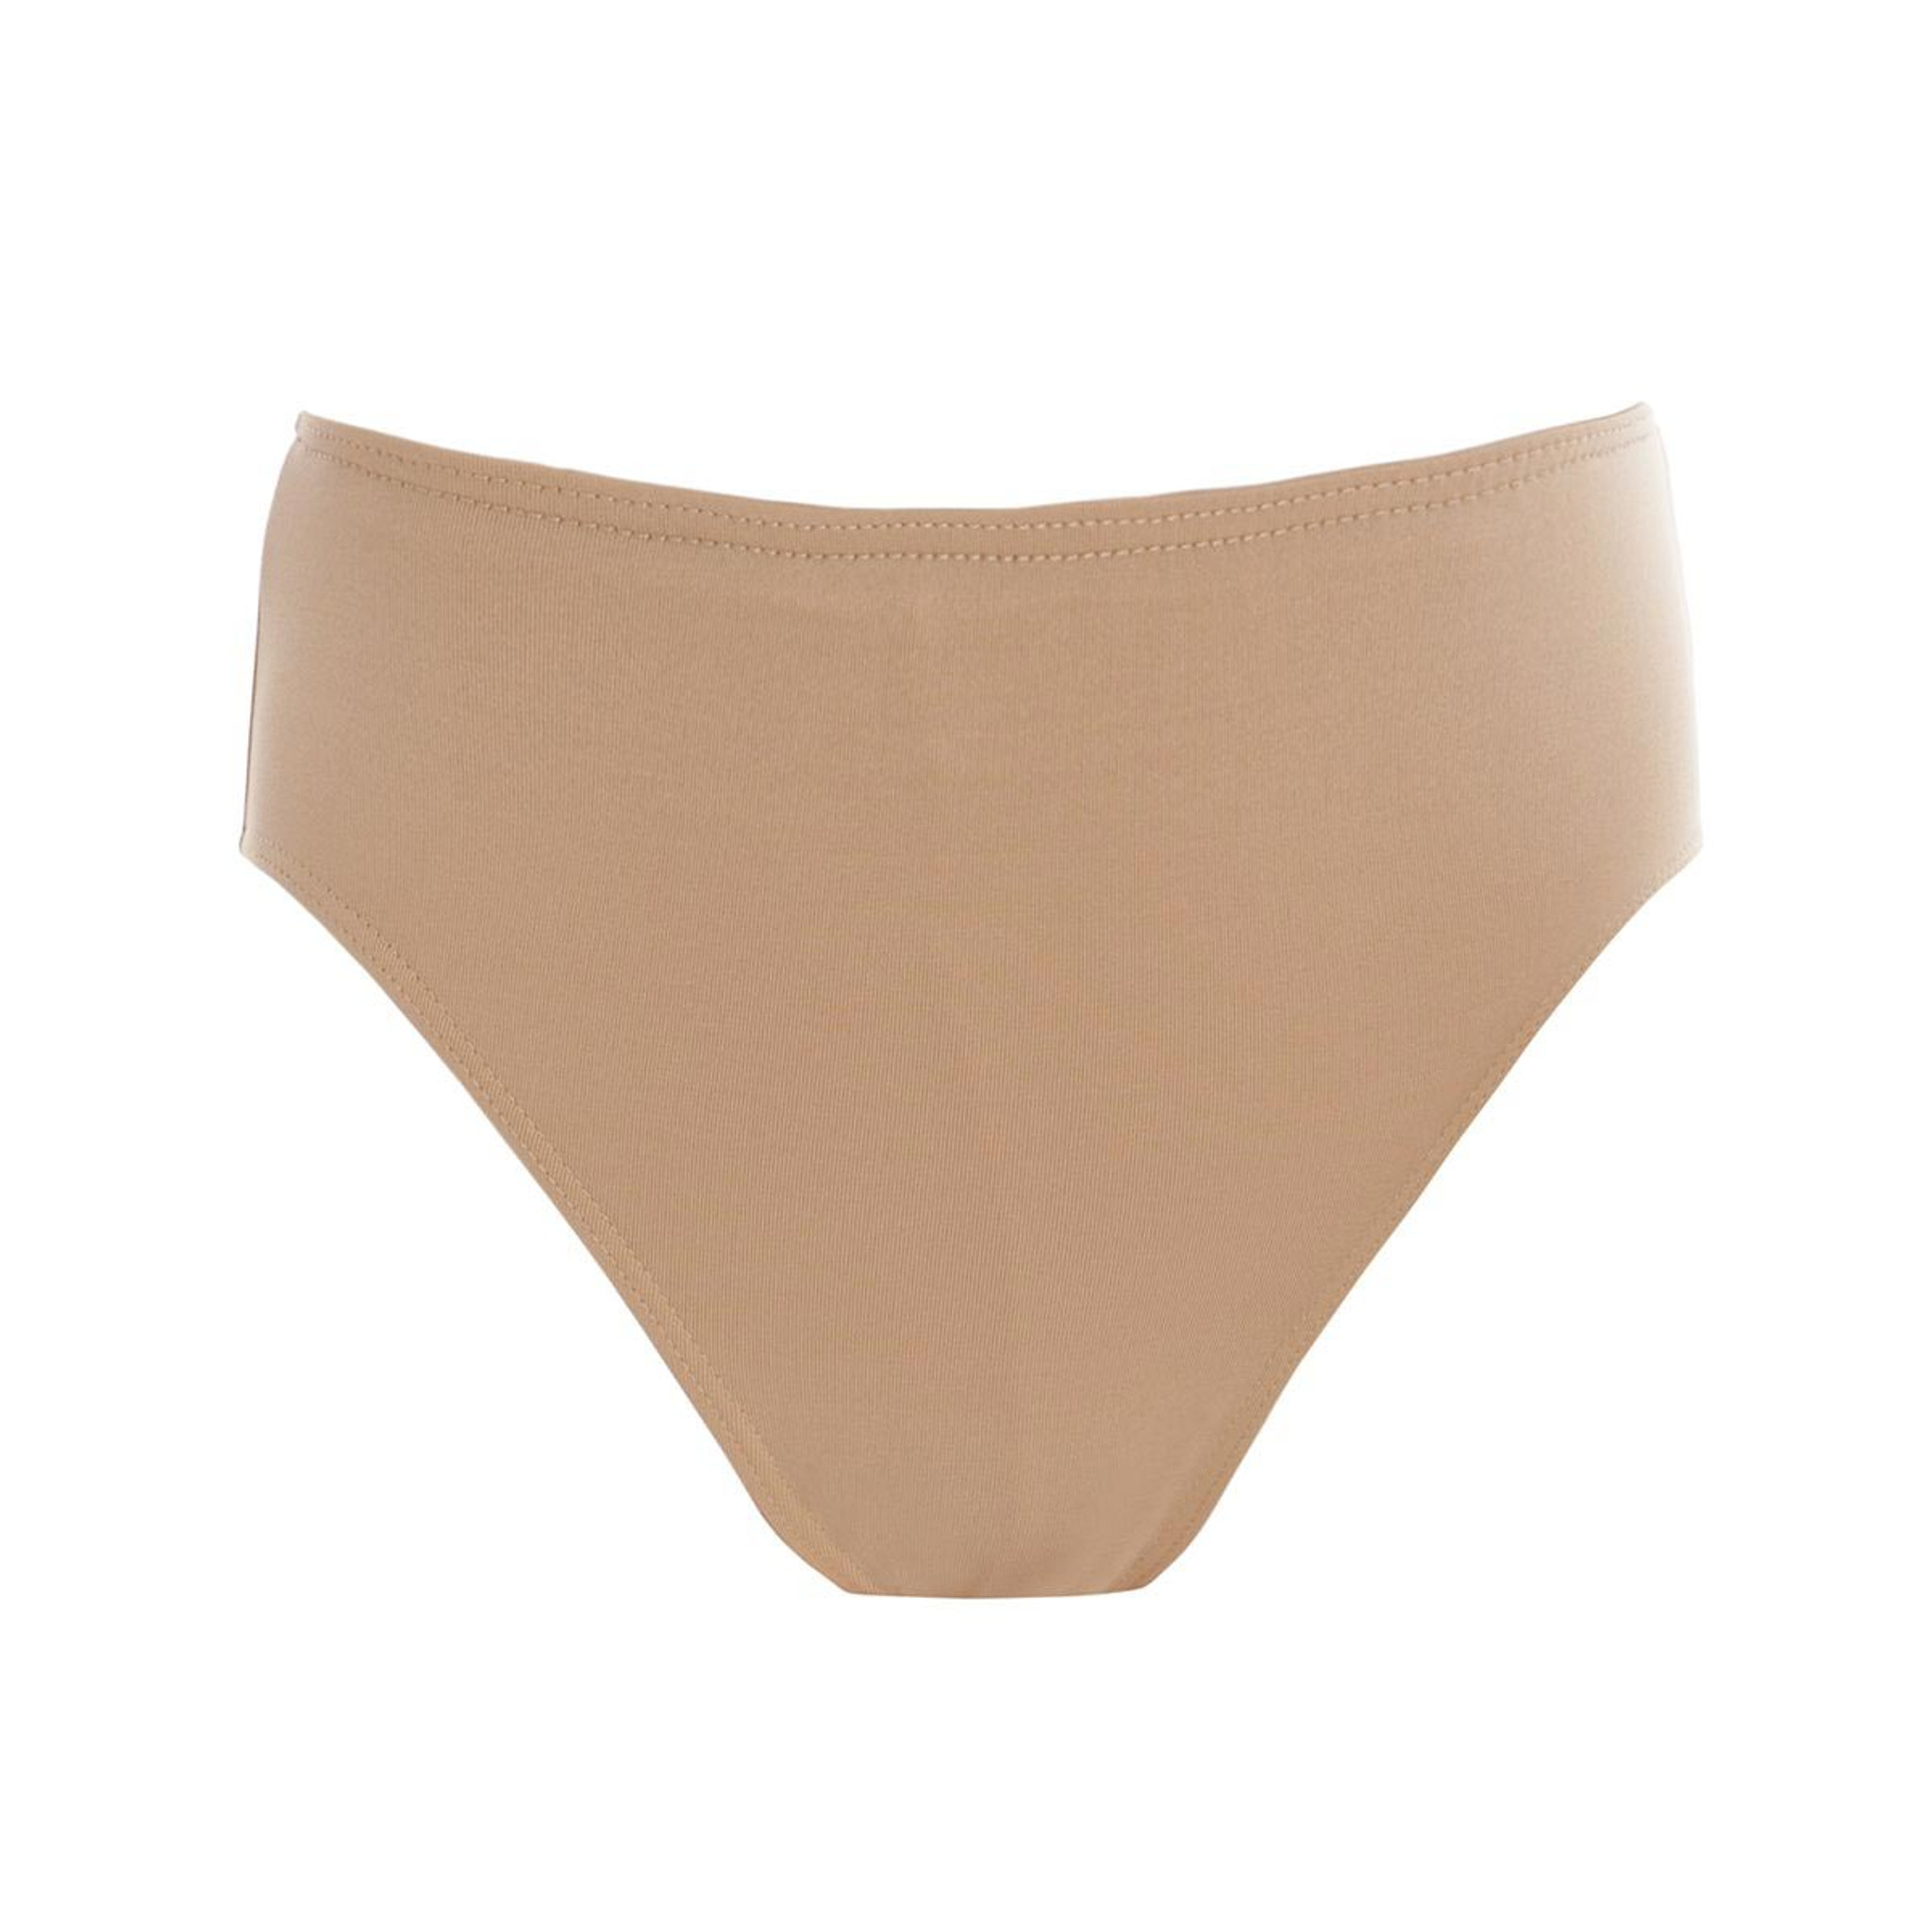 Ladies size Extra Large Seamless Dance High Cut knickers briefs Nude//Natural